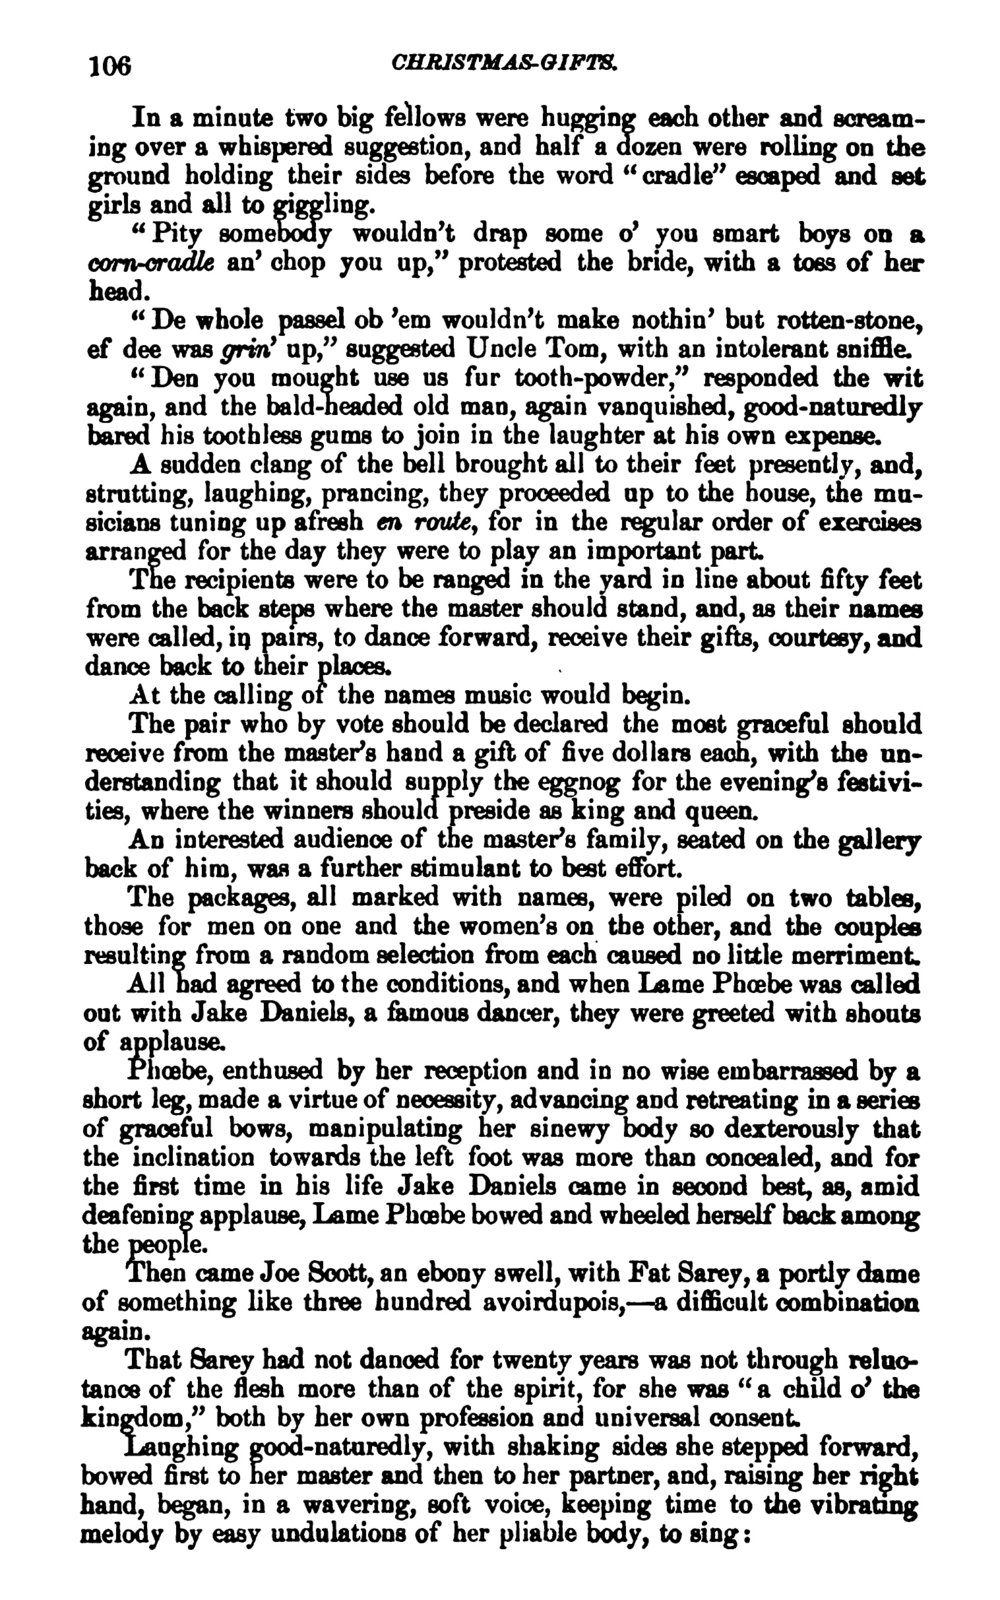 Lippincotts_Monthly_Magazine_1891_p107 119.jpg